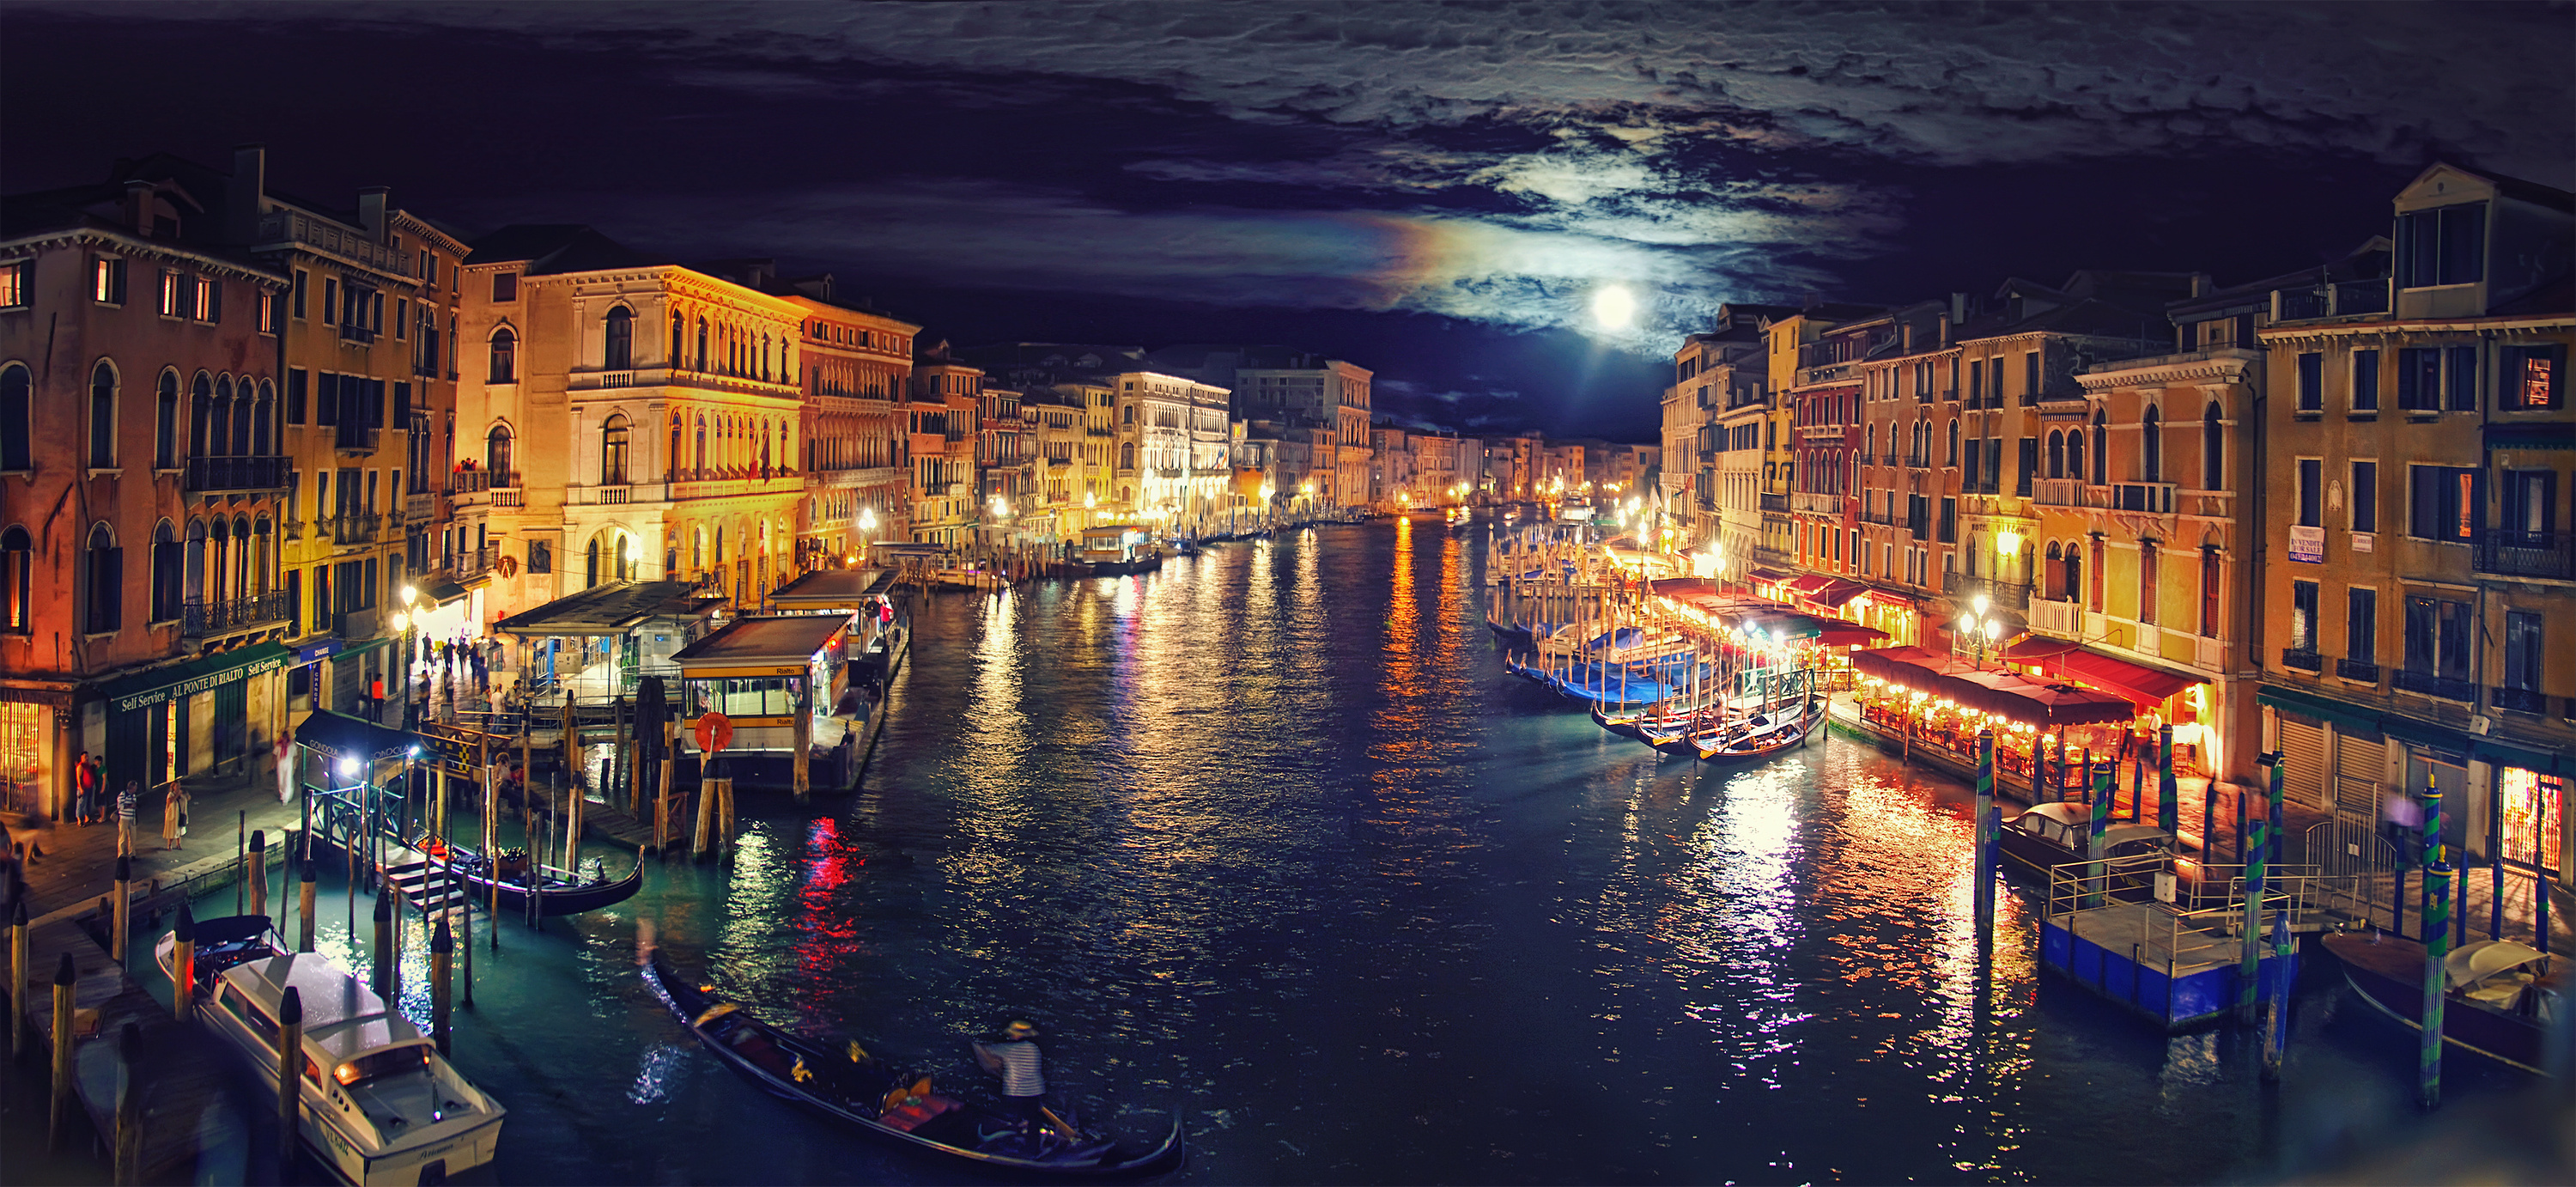 Italy Venice Grand Canal night reflection wallpaper background 3000x1382